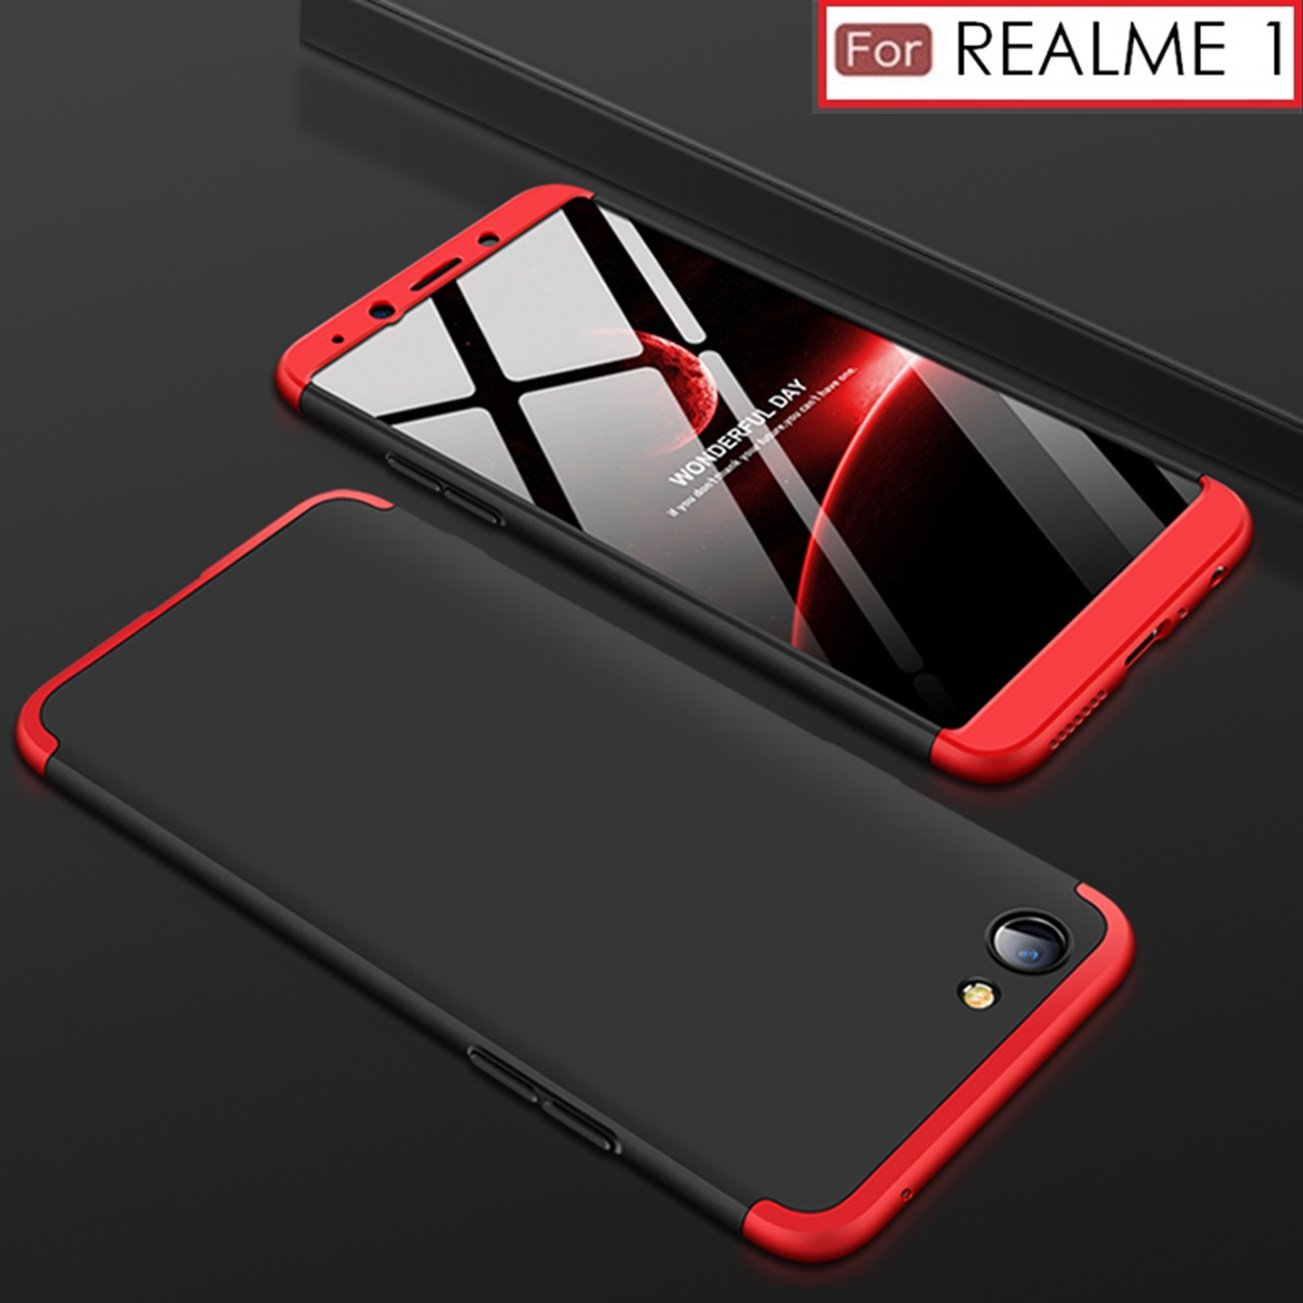 finest selection e5a2d a09ba WOW Imagine 3 in 1 Double Dip Case Anti Slip Super Slim Hybrid PC All Angle  Protection Lightweight Matte Premium Hard Back Cover for OPPO REALME 1 ...